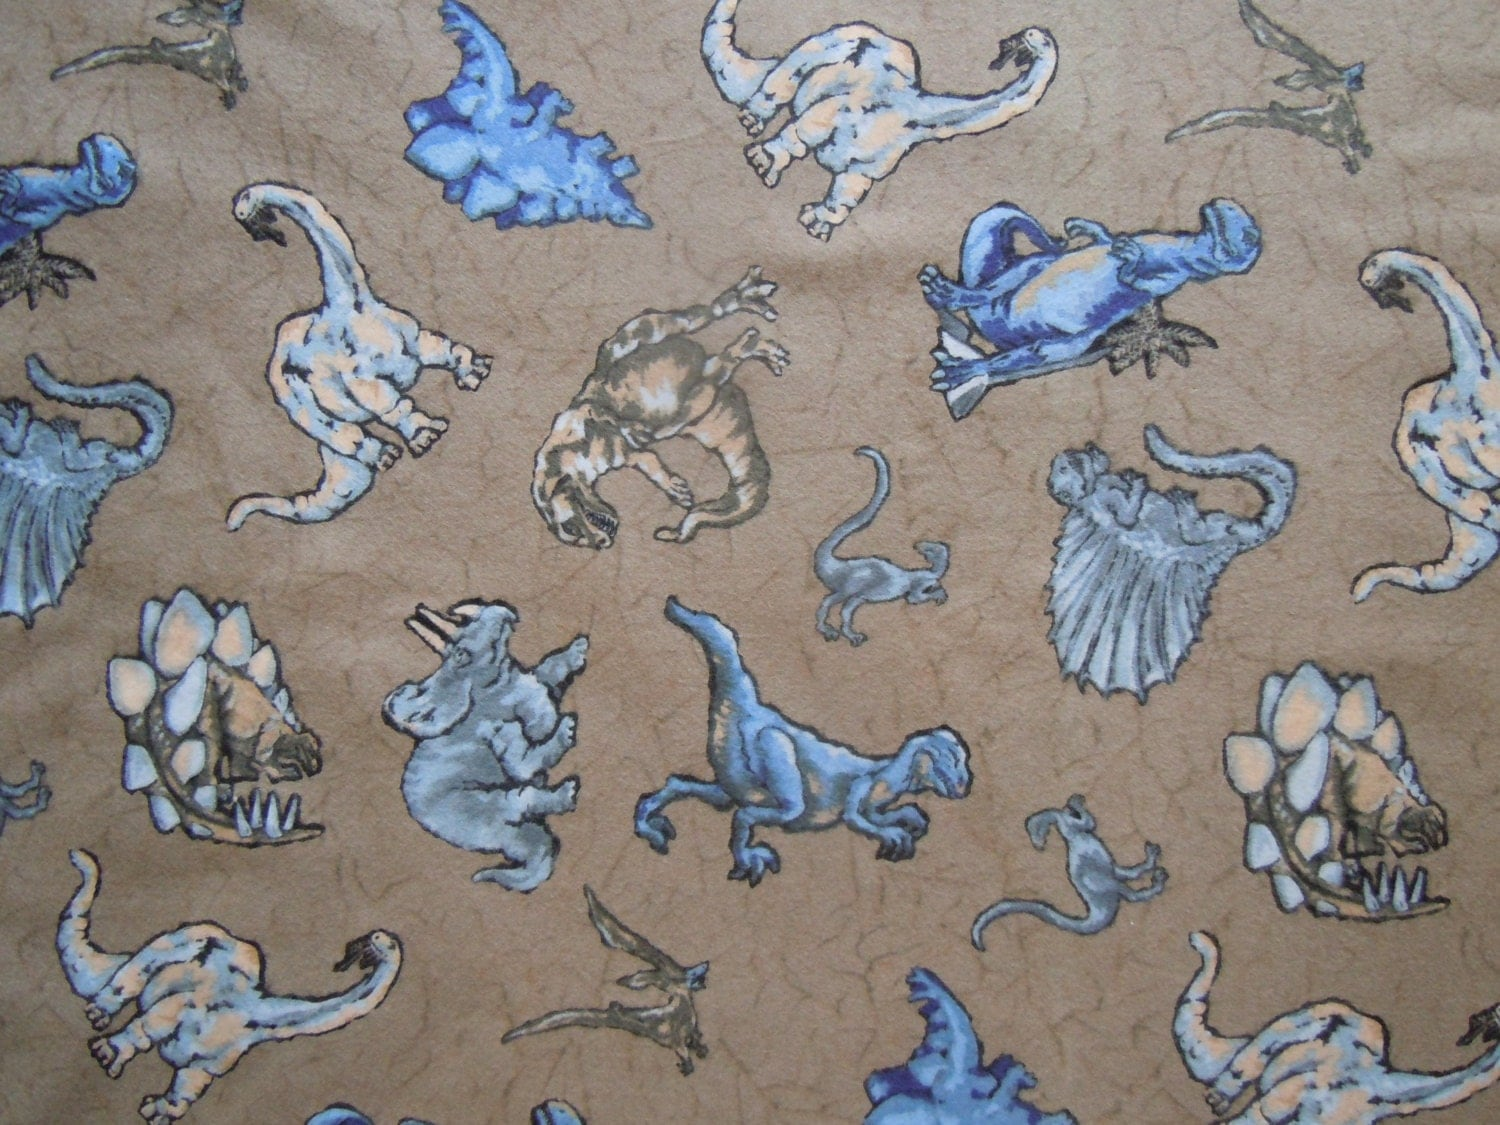 Green dinosaur print cotton flannel fabric yardage remnant for Dinosaur fabric